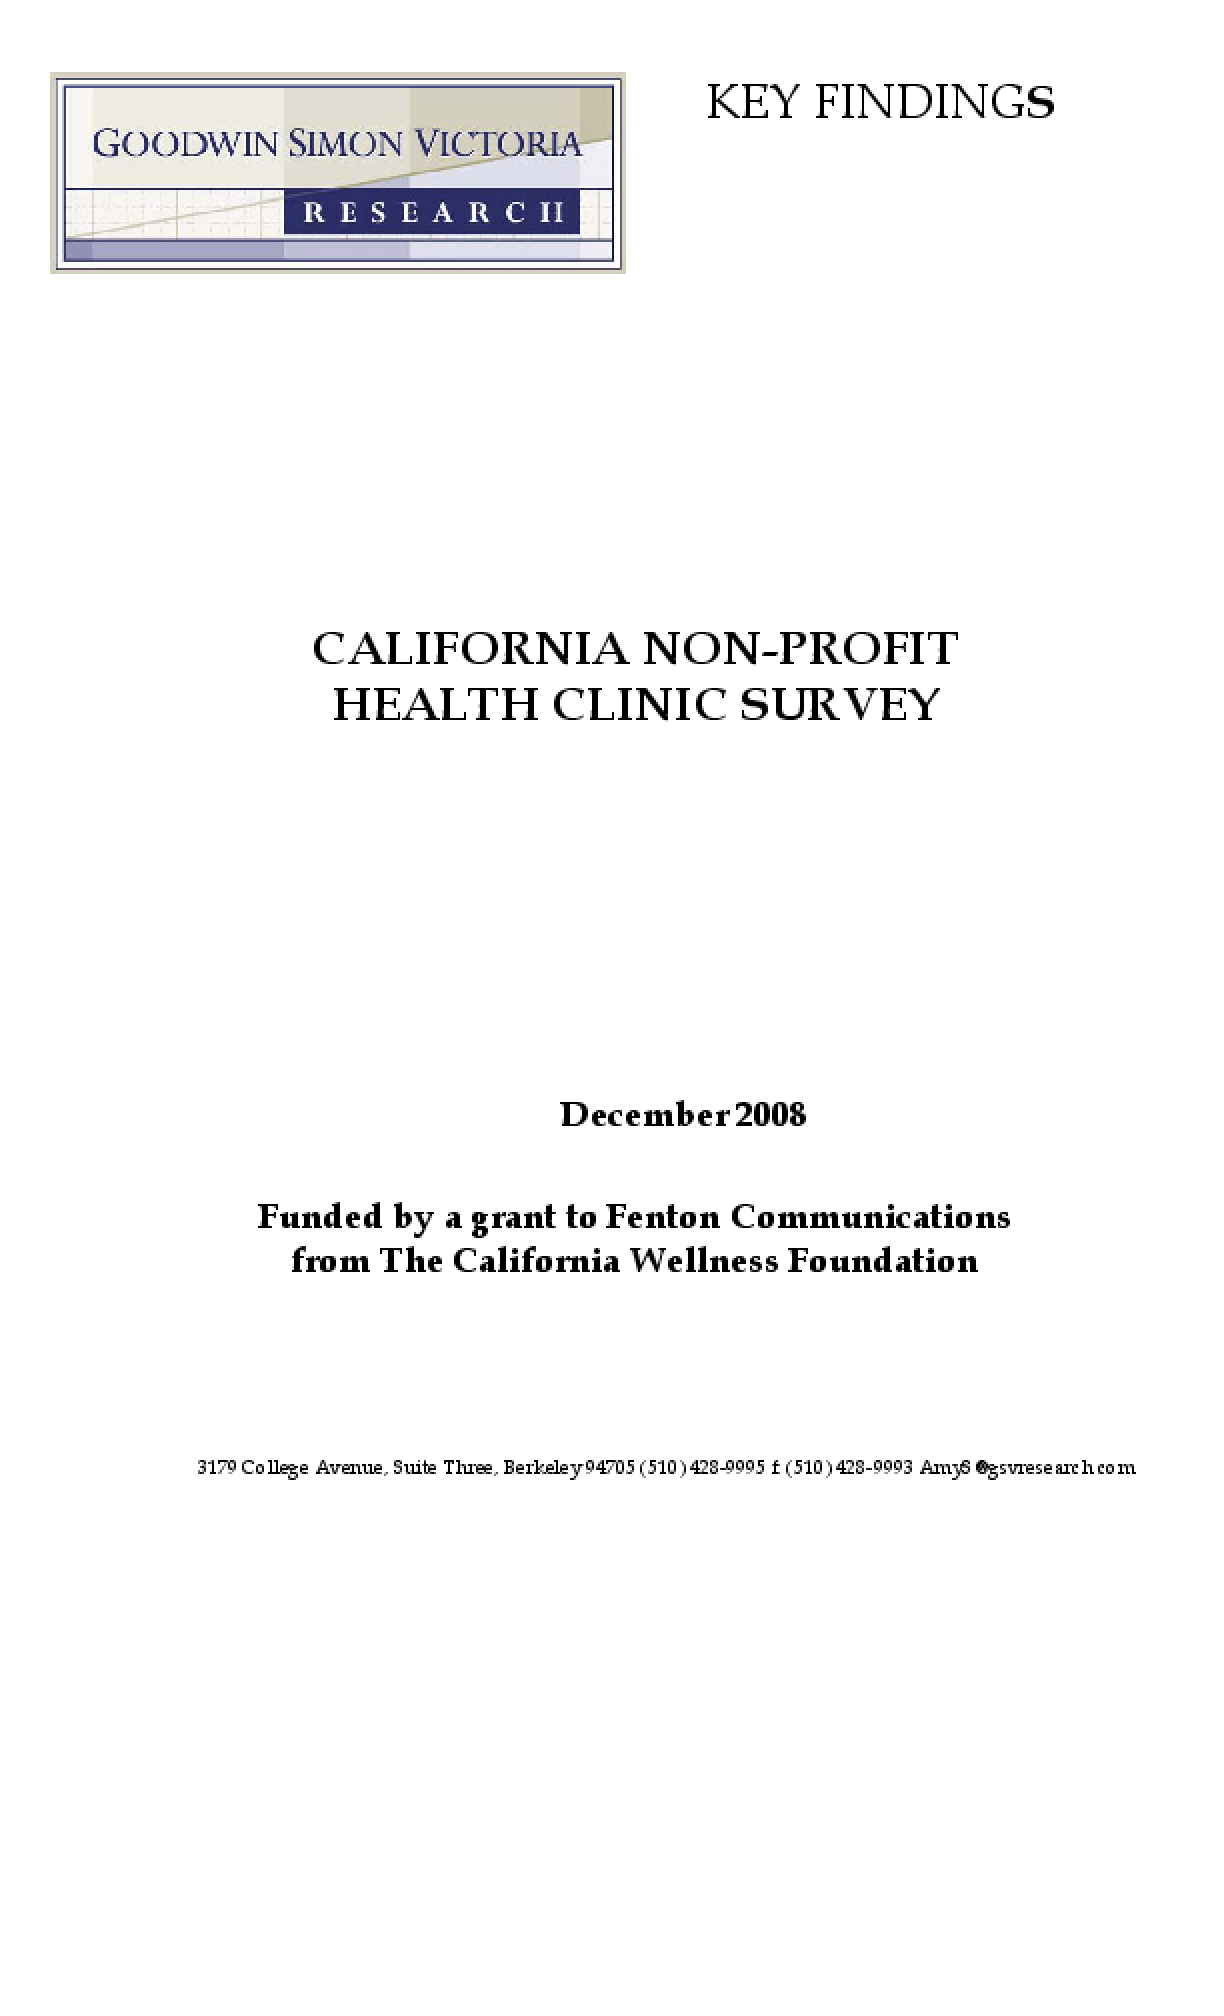 California Non-Profit Health Clinic Survey